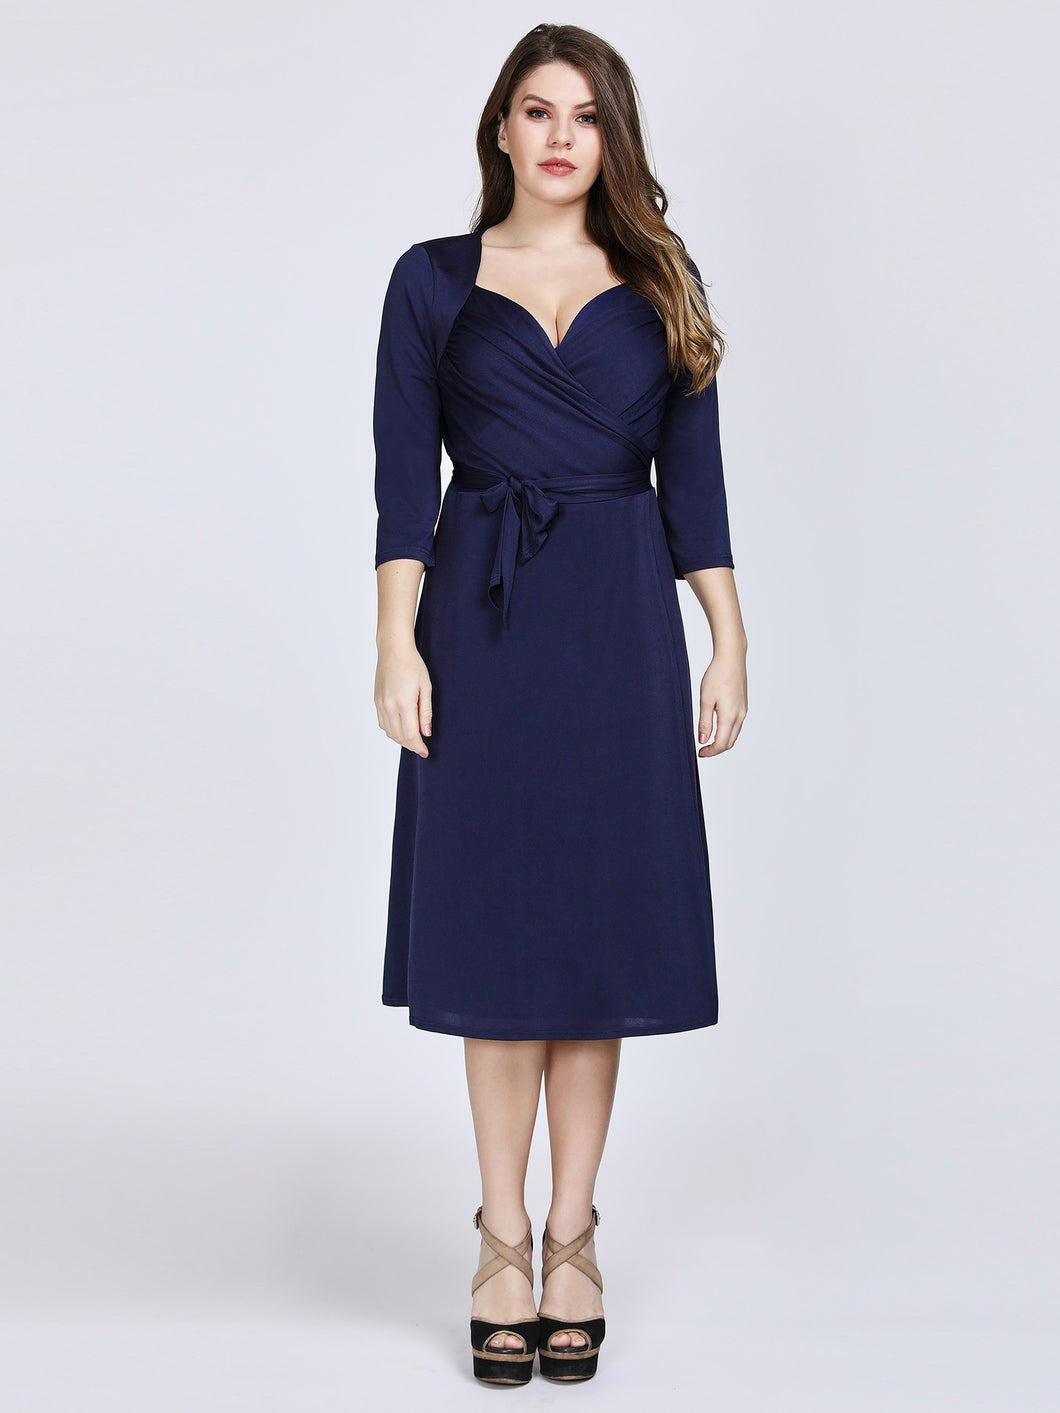 Chiffon Short 3/4 Sleeves Sweetheart Mother of the Bride Dresses